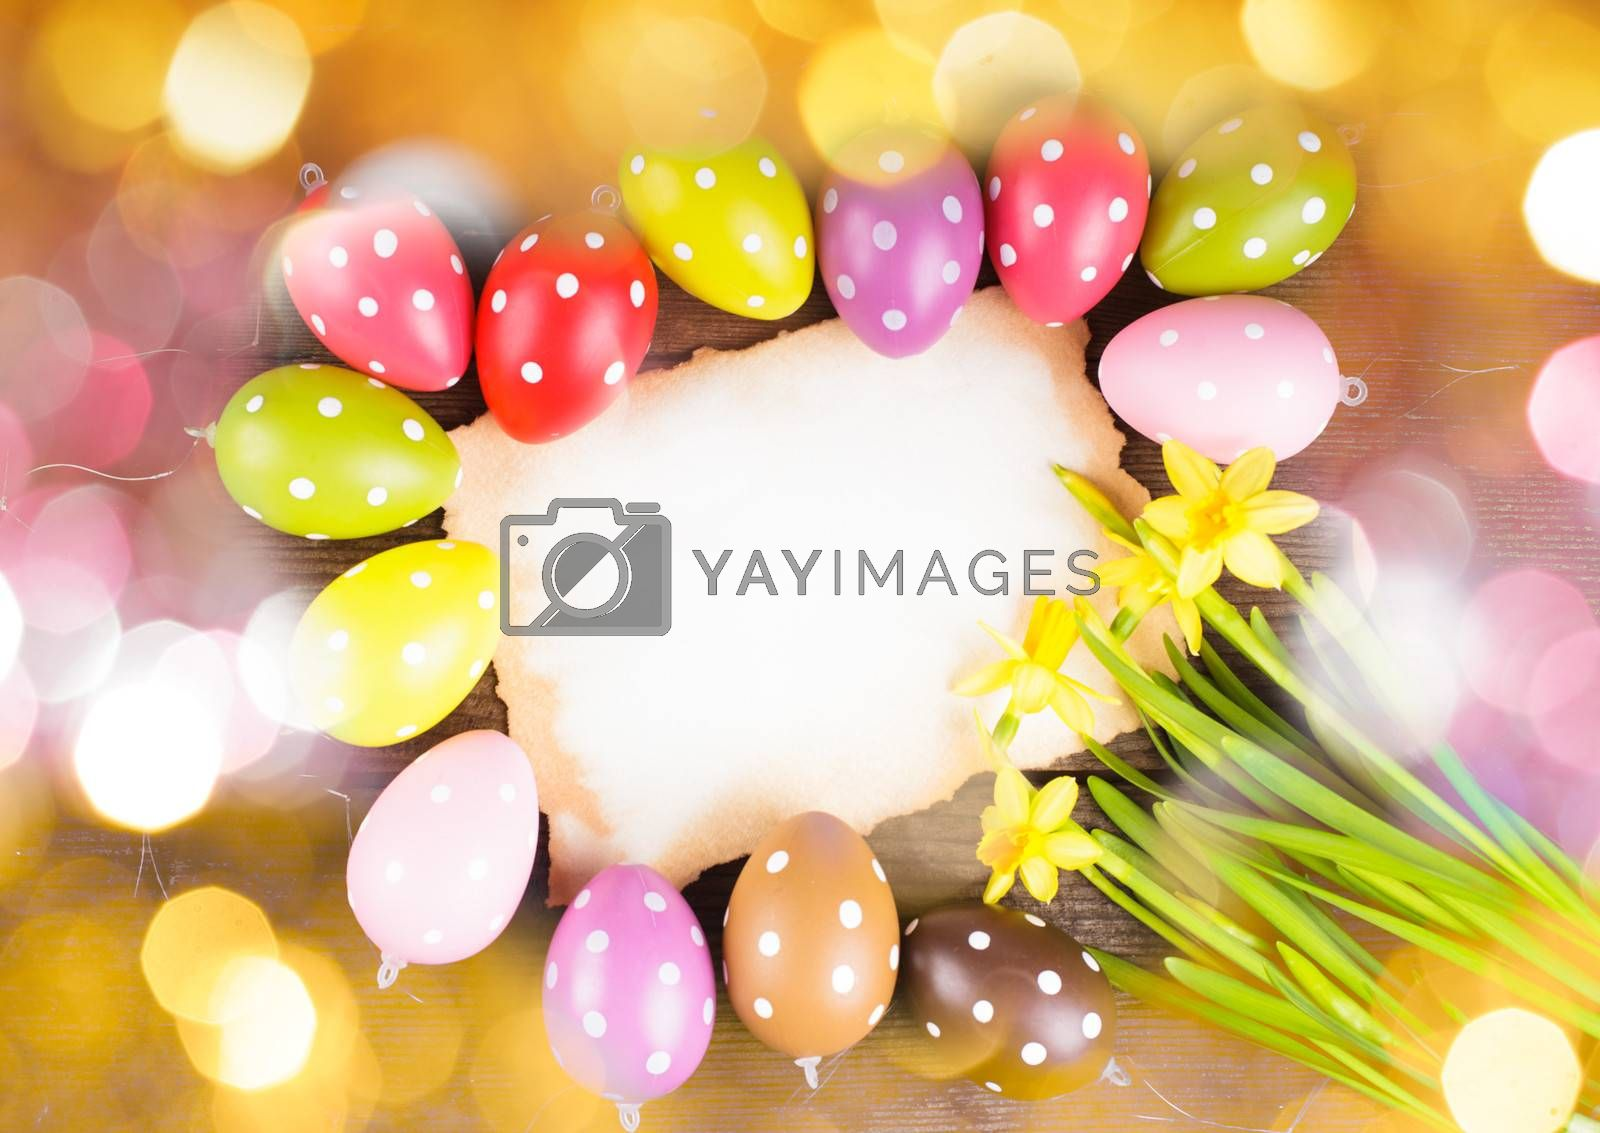 Colorful polka dot eggs and empty greeting card. Easter decorations